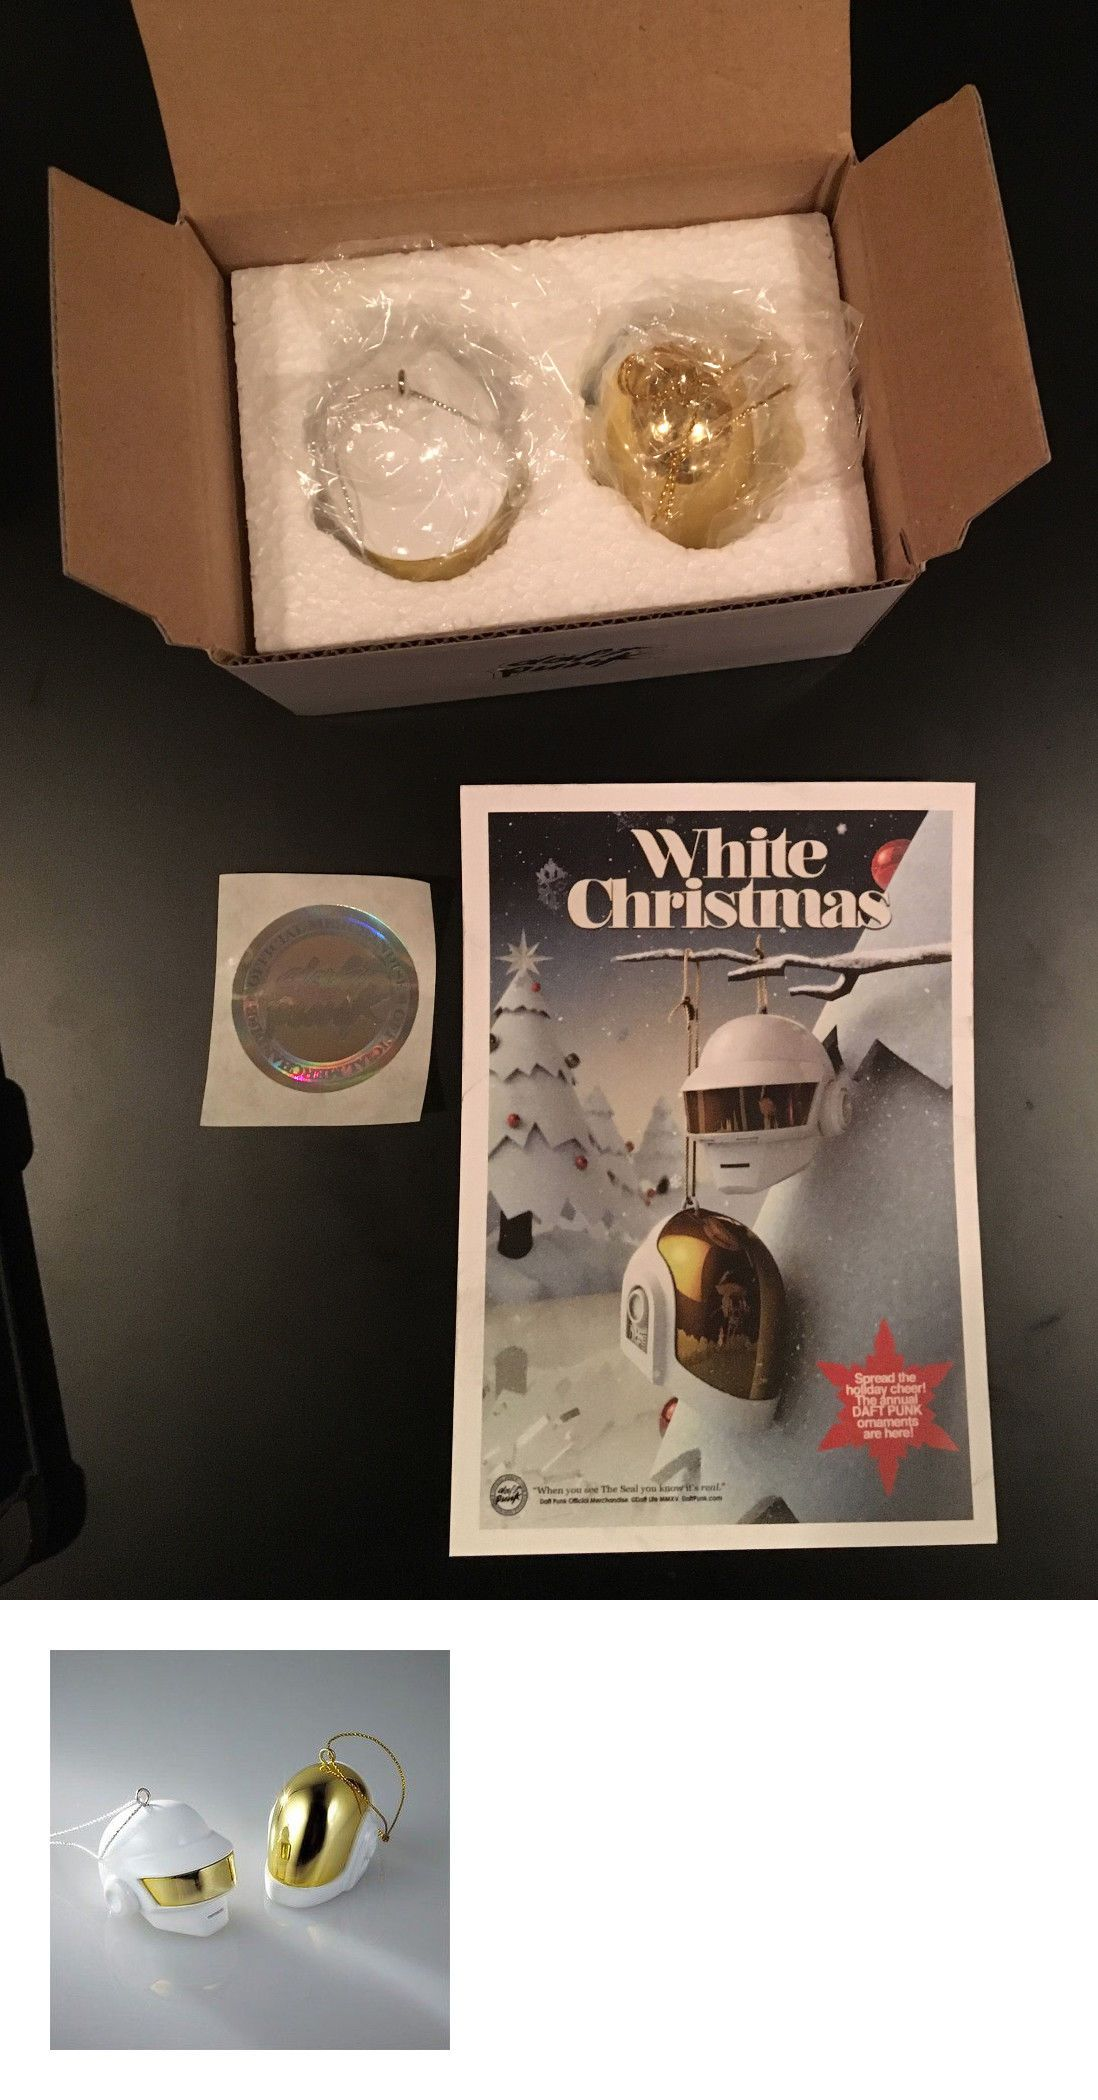 Christmas Decorations Daft Punk Limited Edition White And Gold